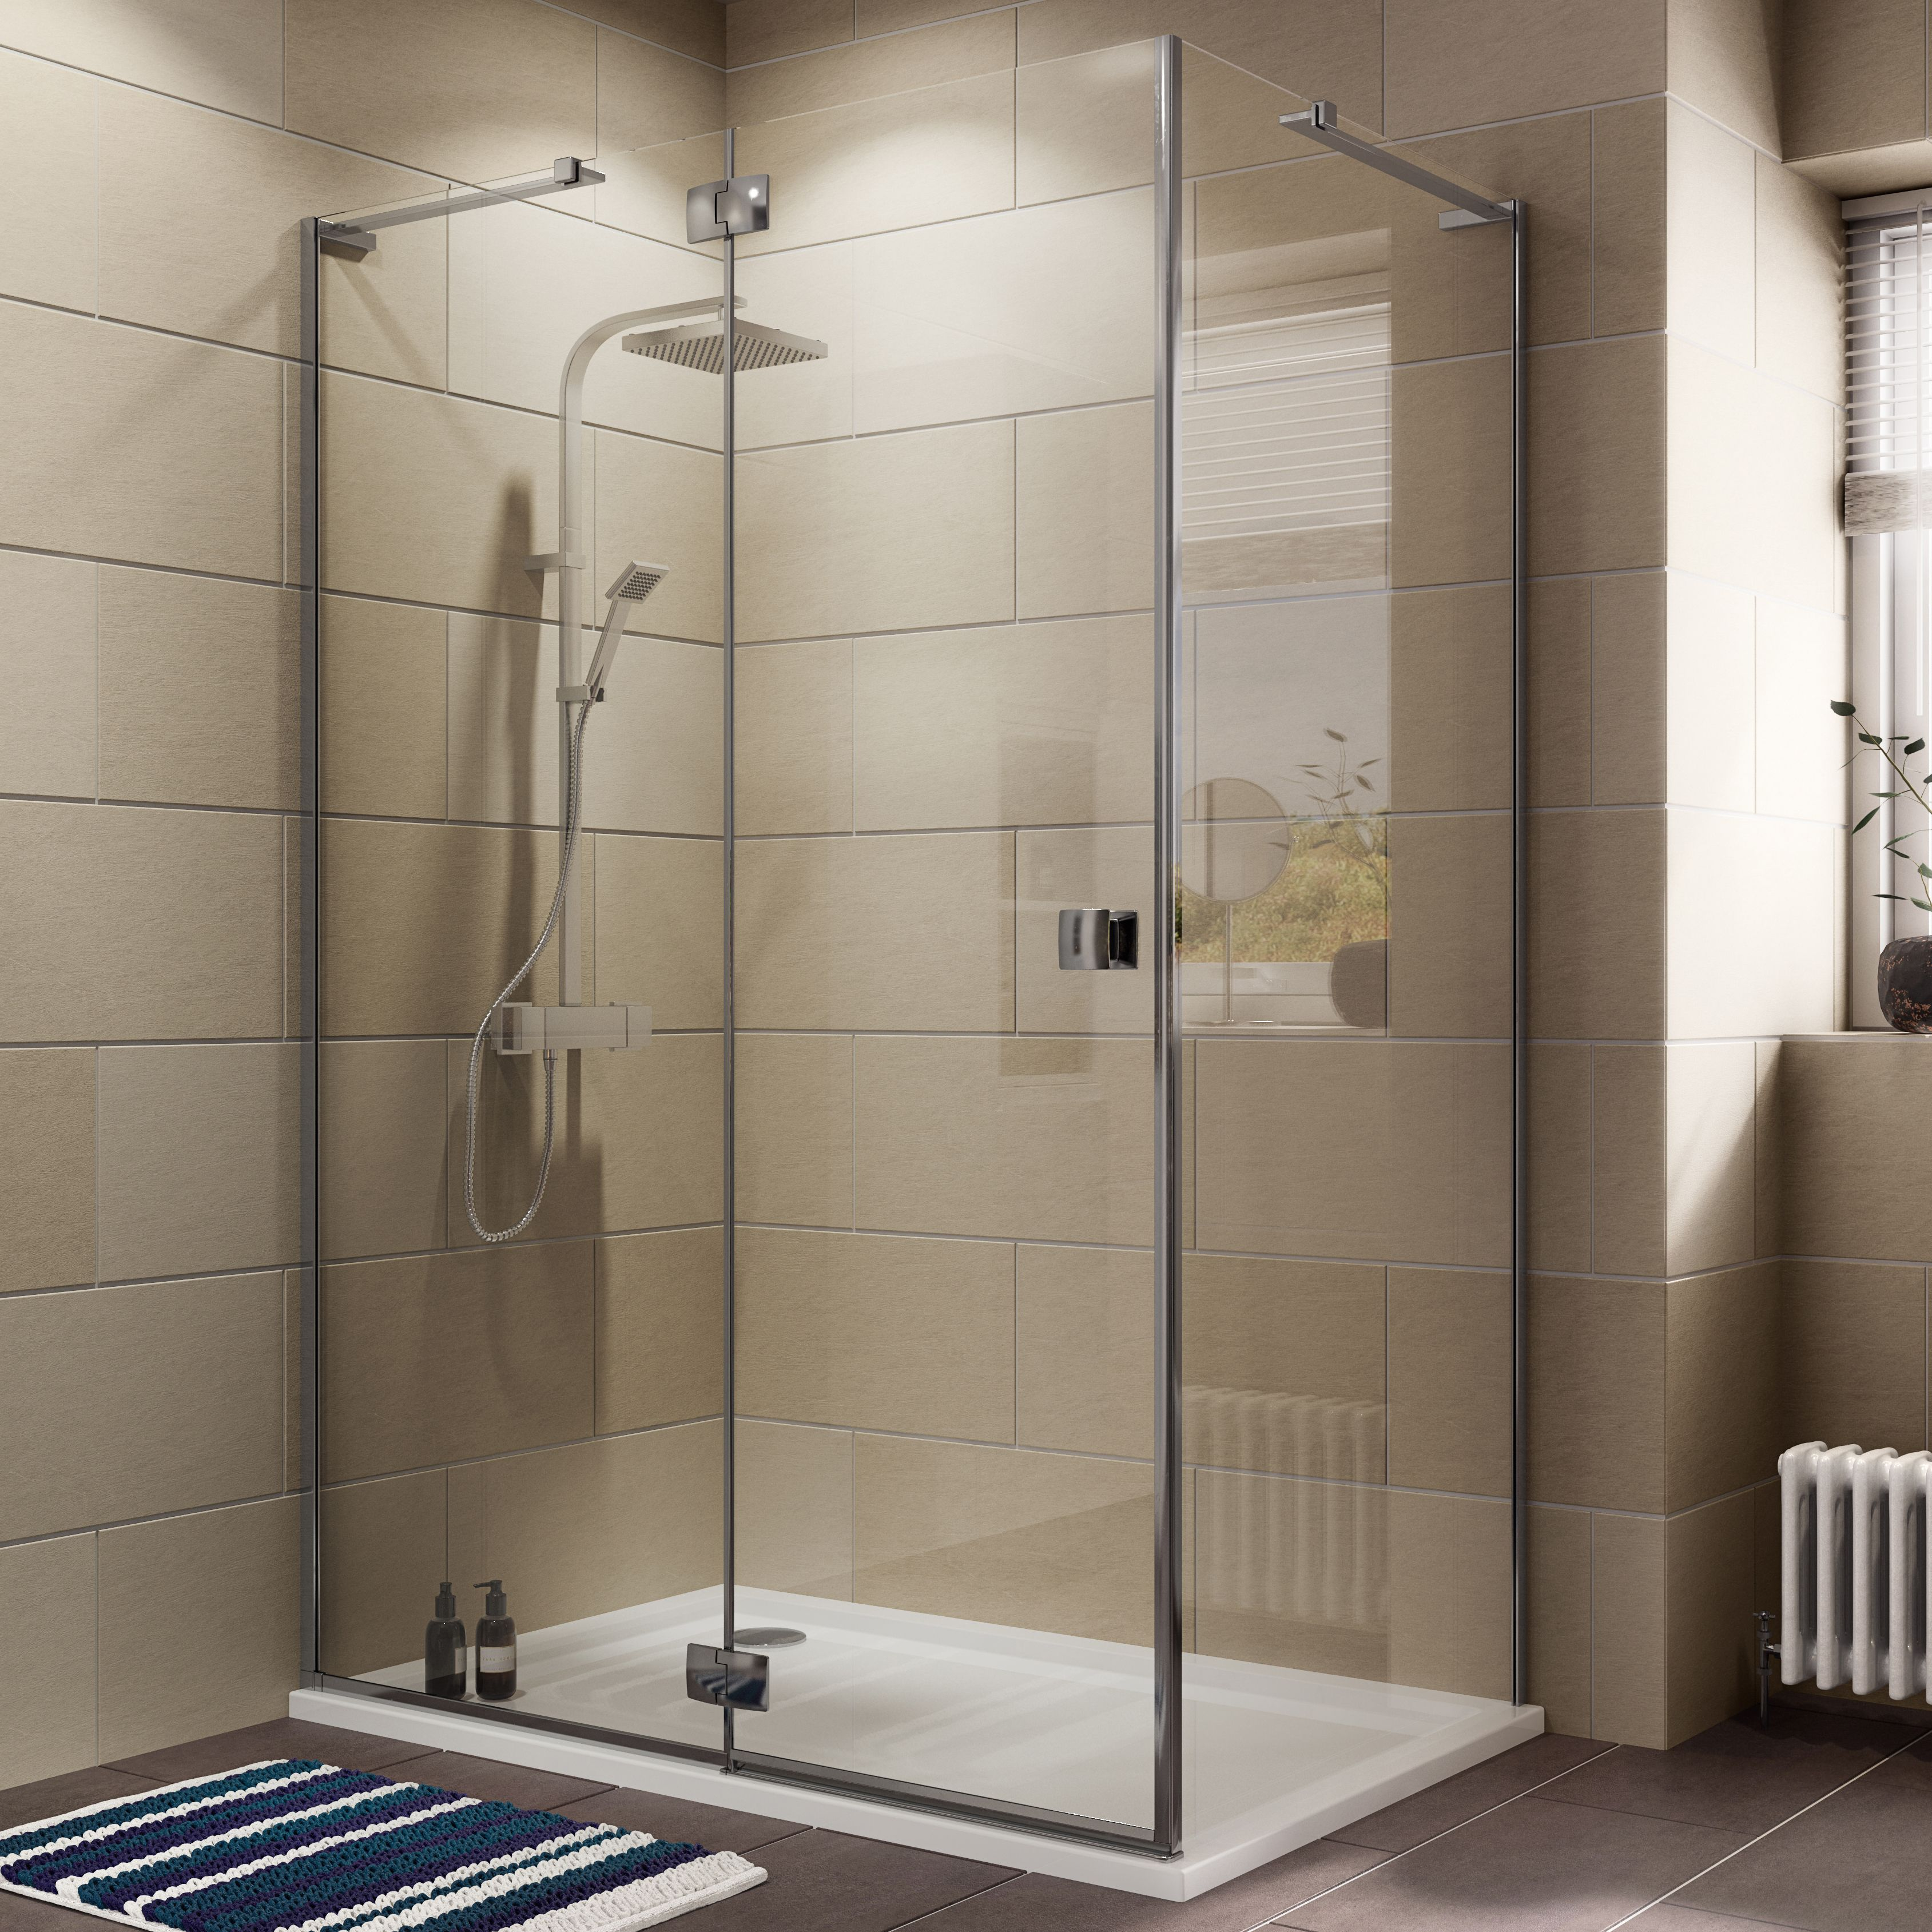 Cooke & Lewis Luxuriant Rectangular Lh Shower Enclosure, Tray & Waste Pack With Hinged Door (w)1400mm (d)900mm